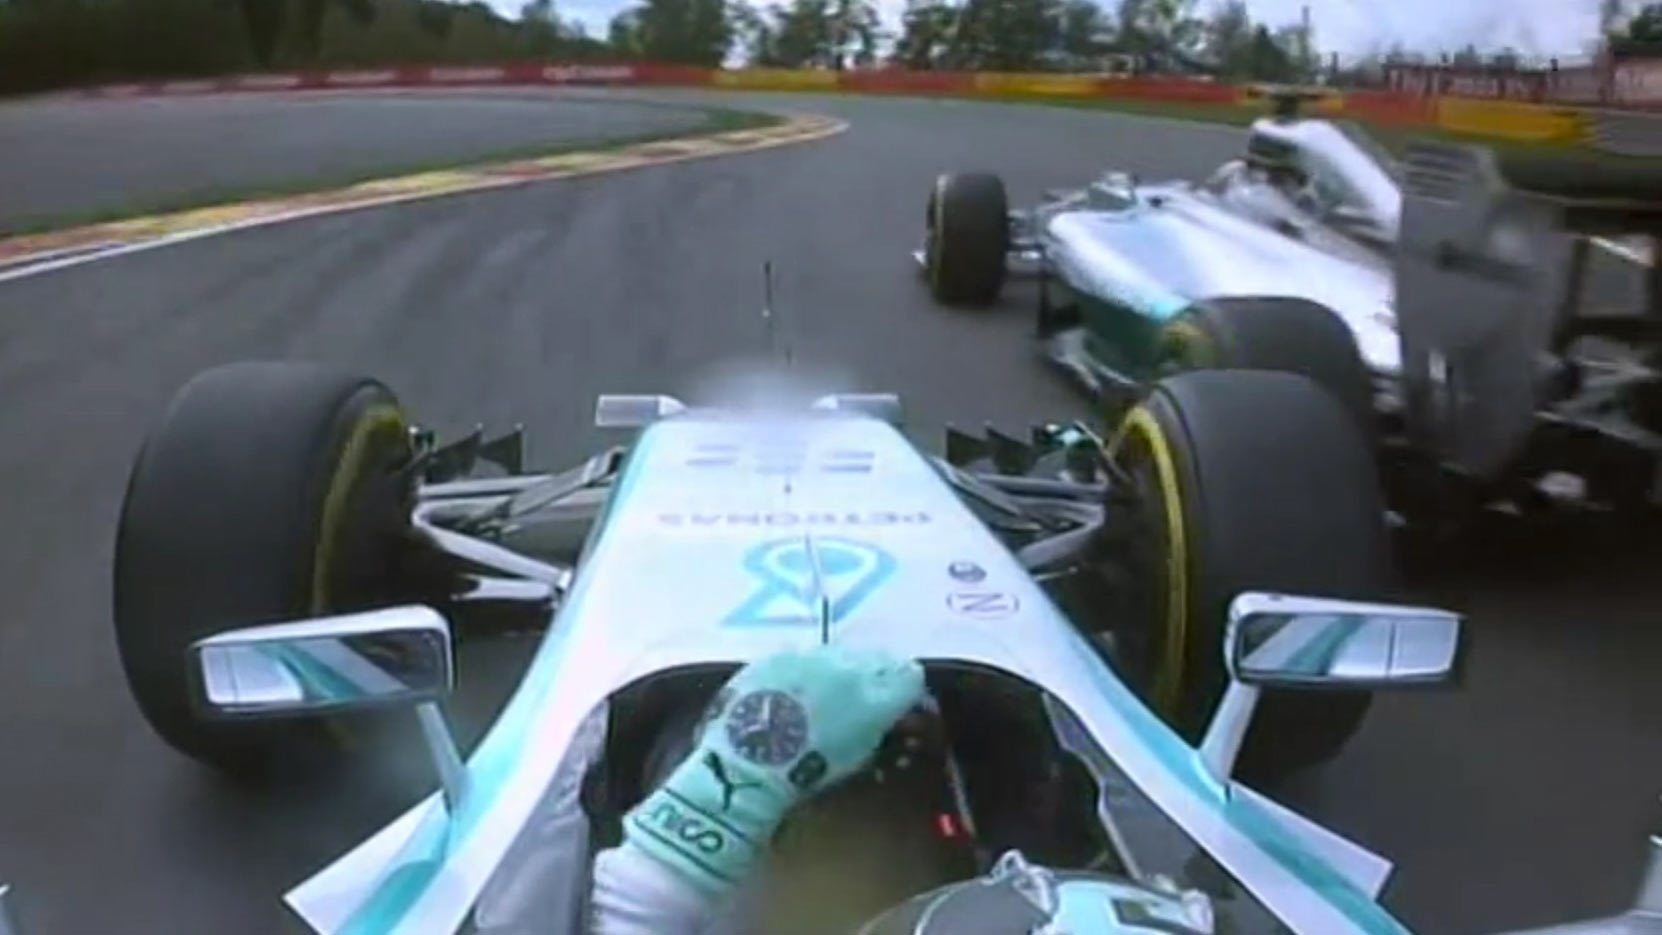 Hamilton and Rosberg come together on lap 2 of the Belgian GP 2014